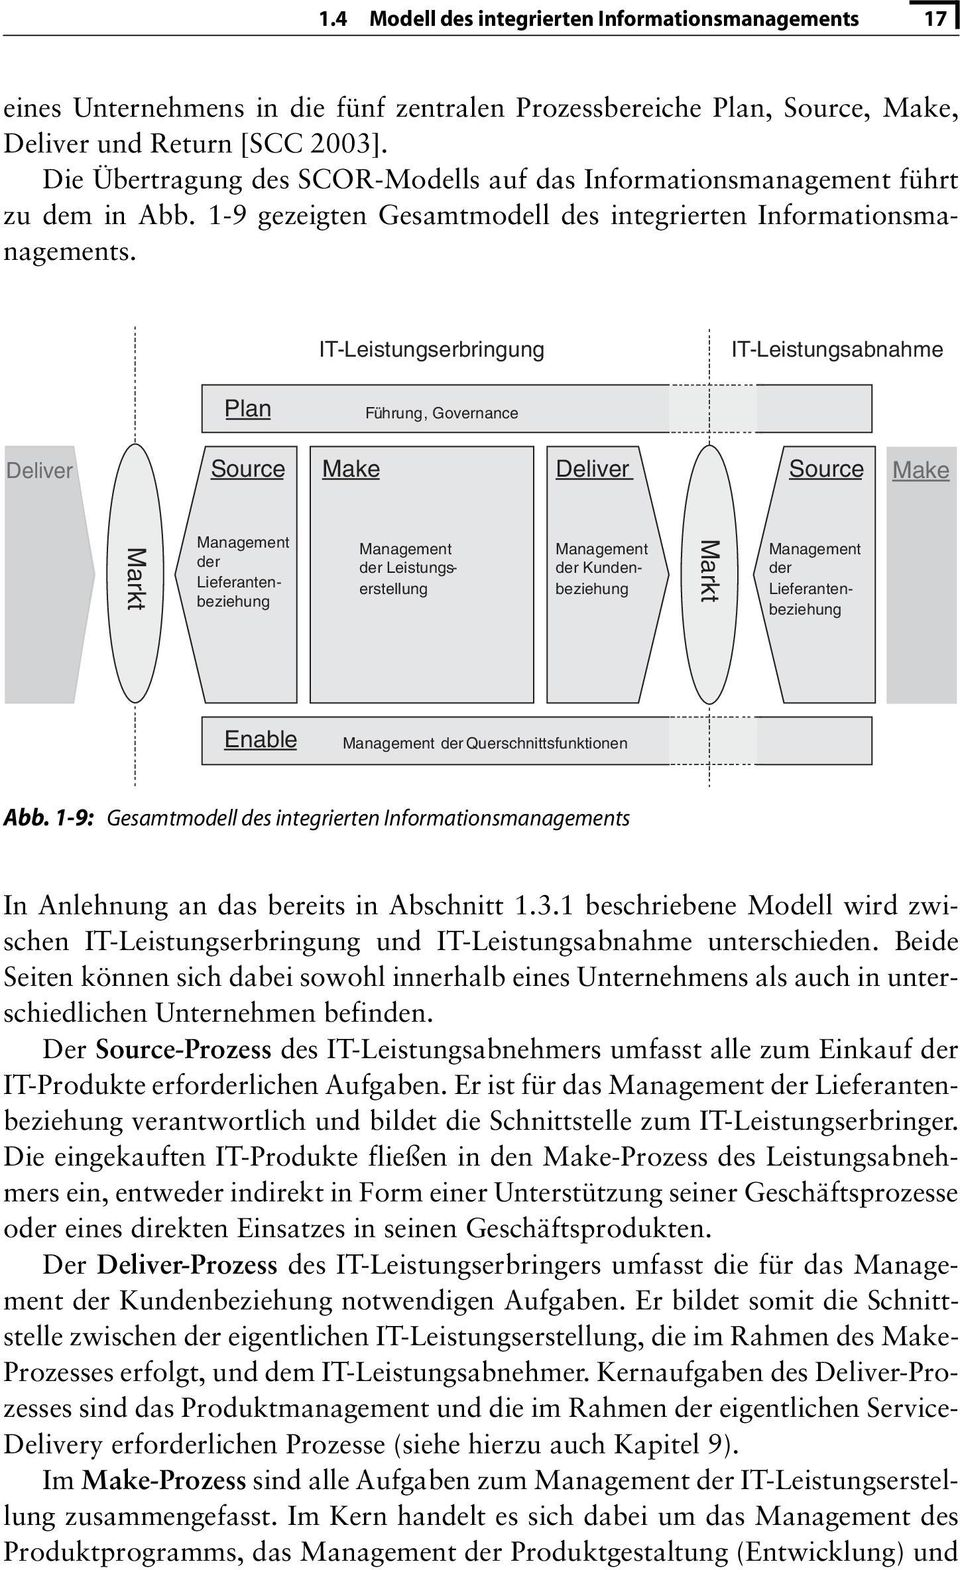 IT-Leistungserbringung IT-Leistungsabnahme Plan Führung, Führung, Governance Governance Deliver Source Make Deliver Source Make Markt Management der Lieferantenbeziehung Management der